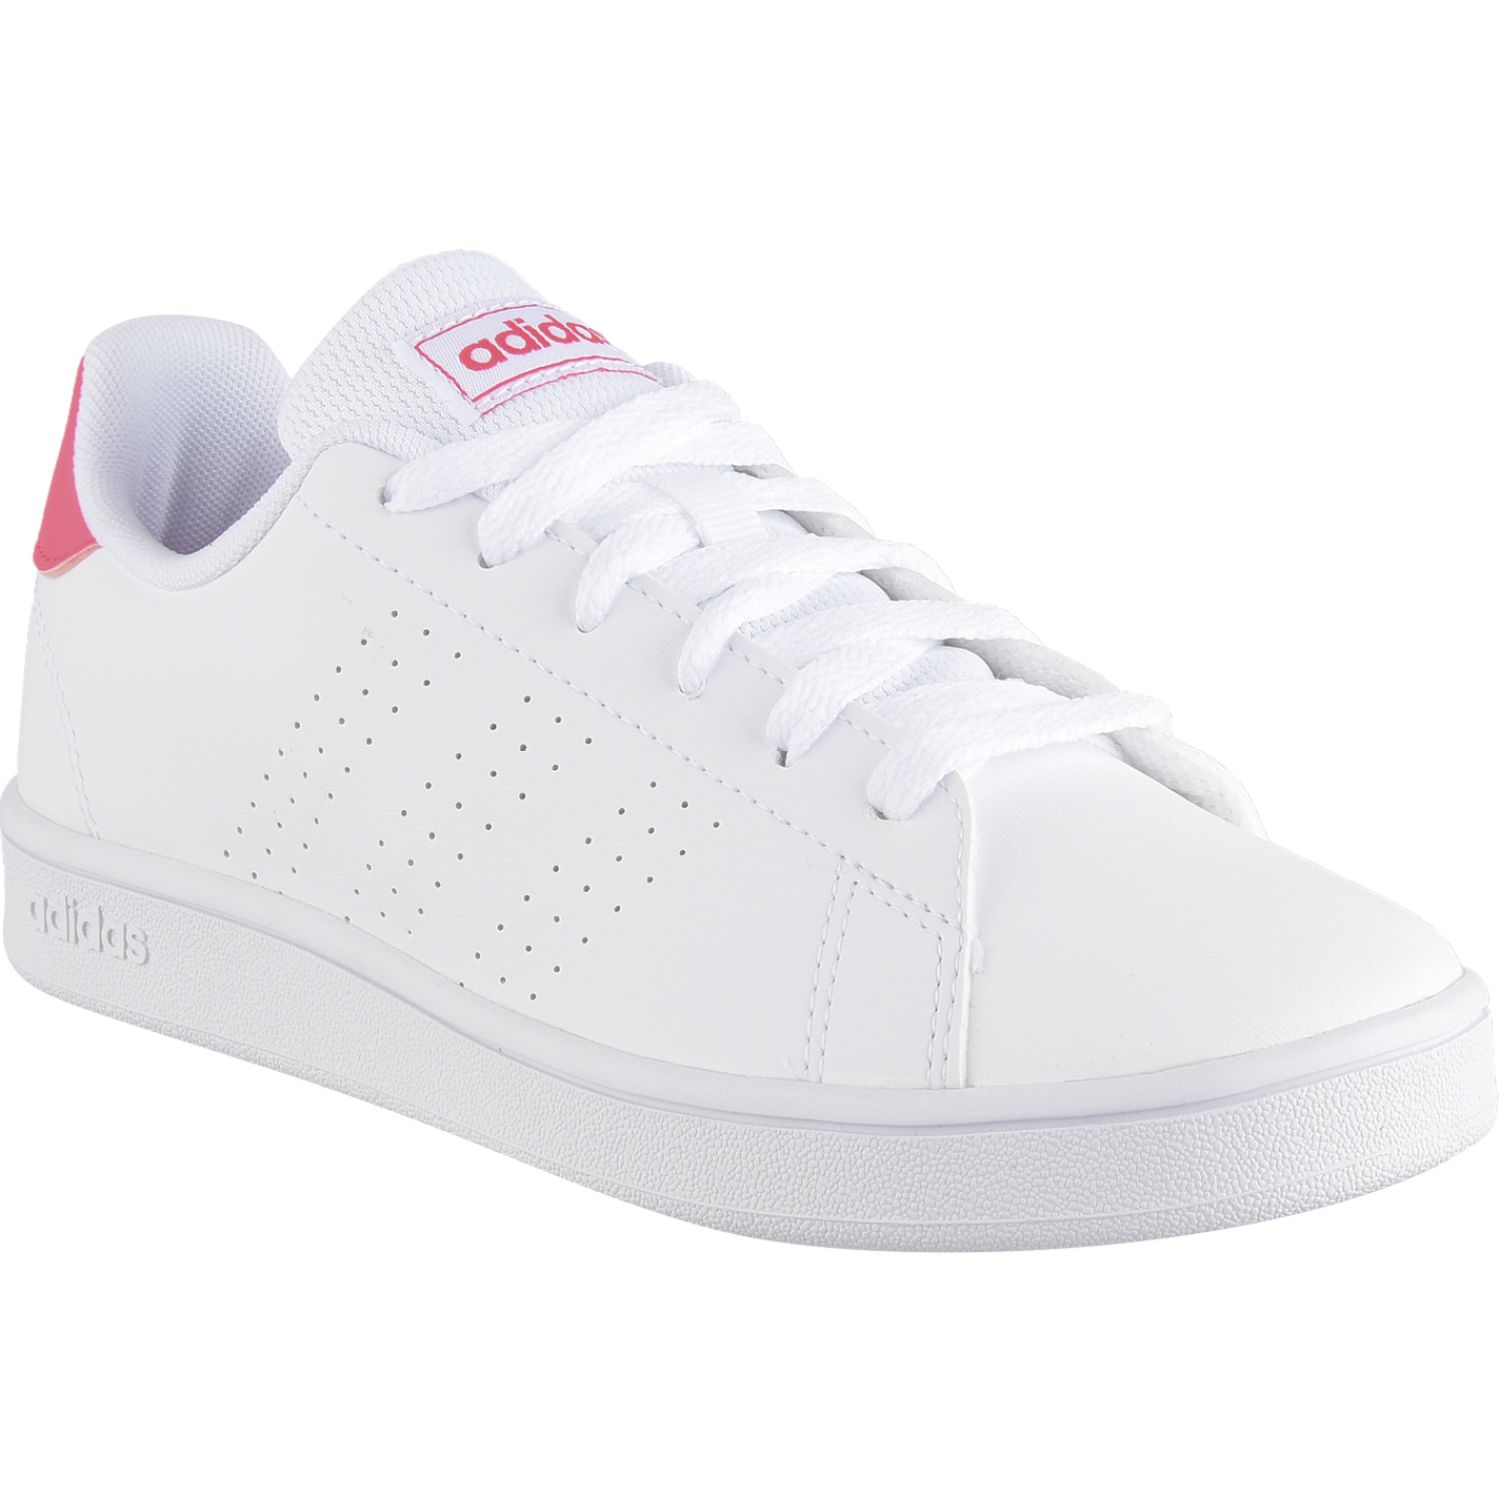 Adidas Advantage K Blanco / rosado Zapatillas